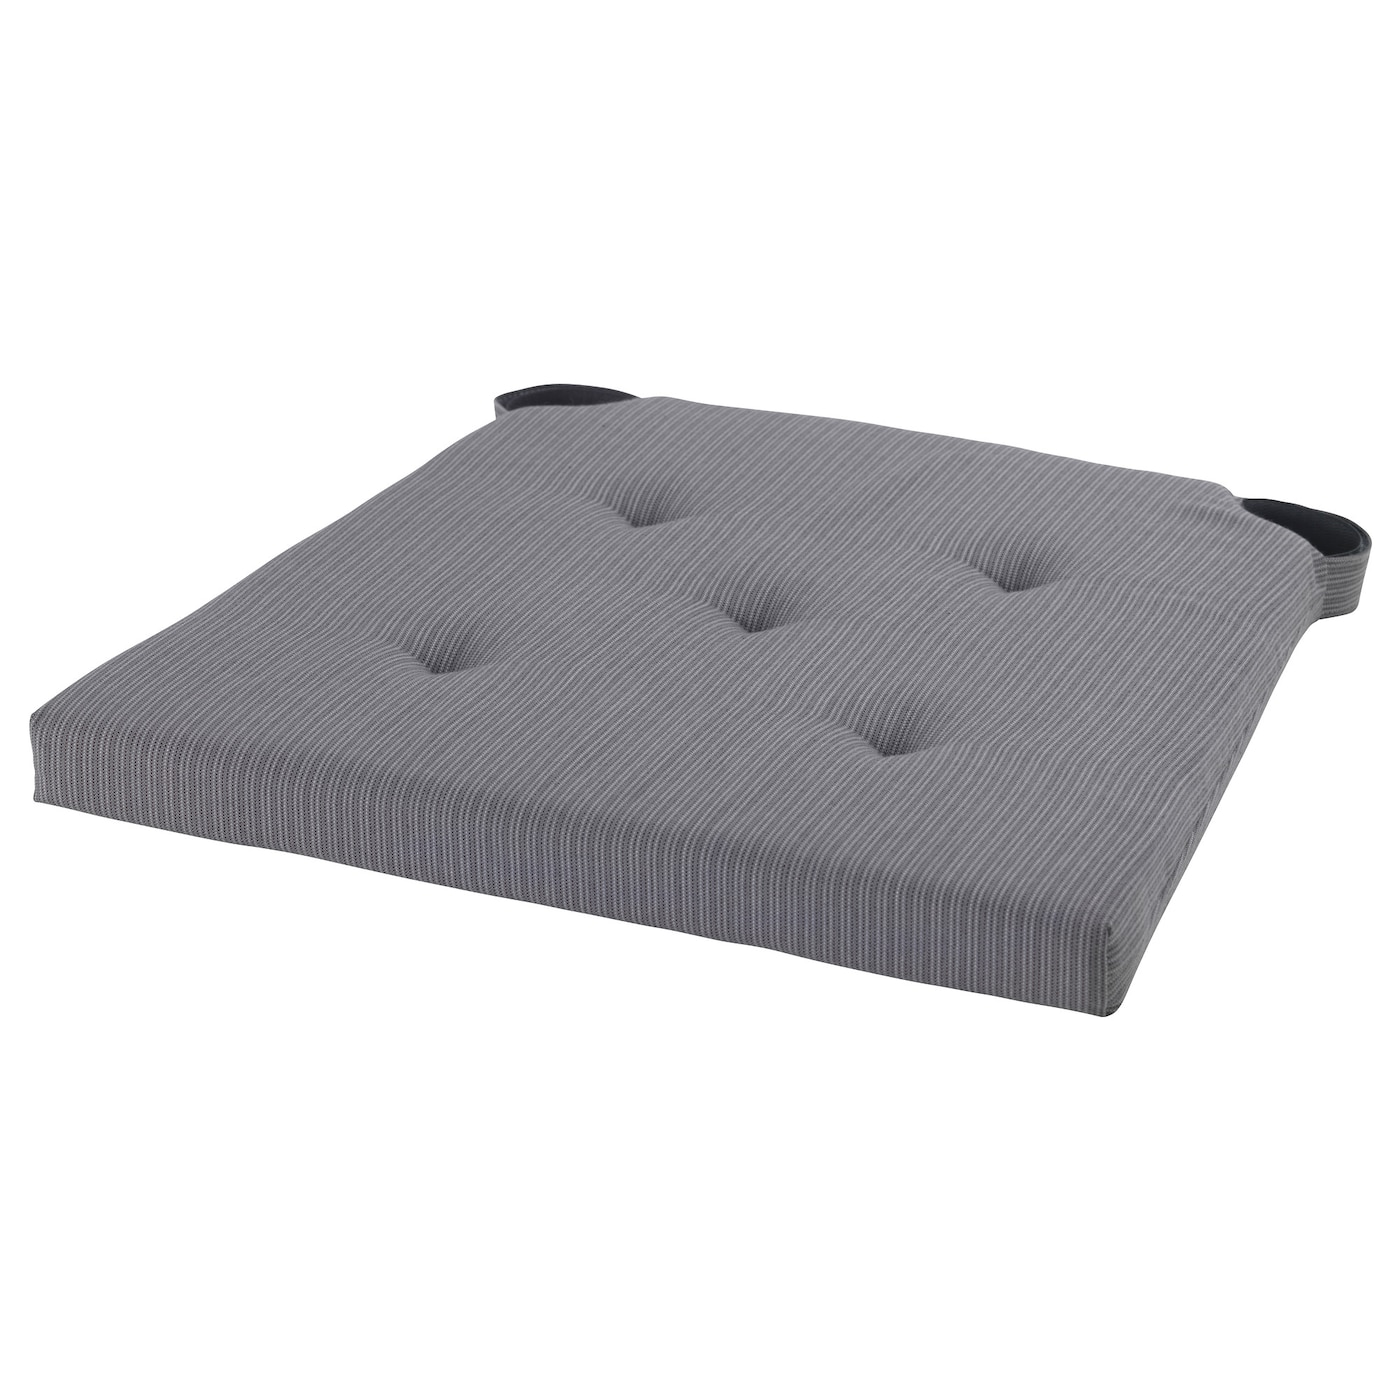 IKEA JUSTINA chair pad Polyurethane foam provides great comfort and long-lasting support.